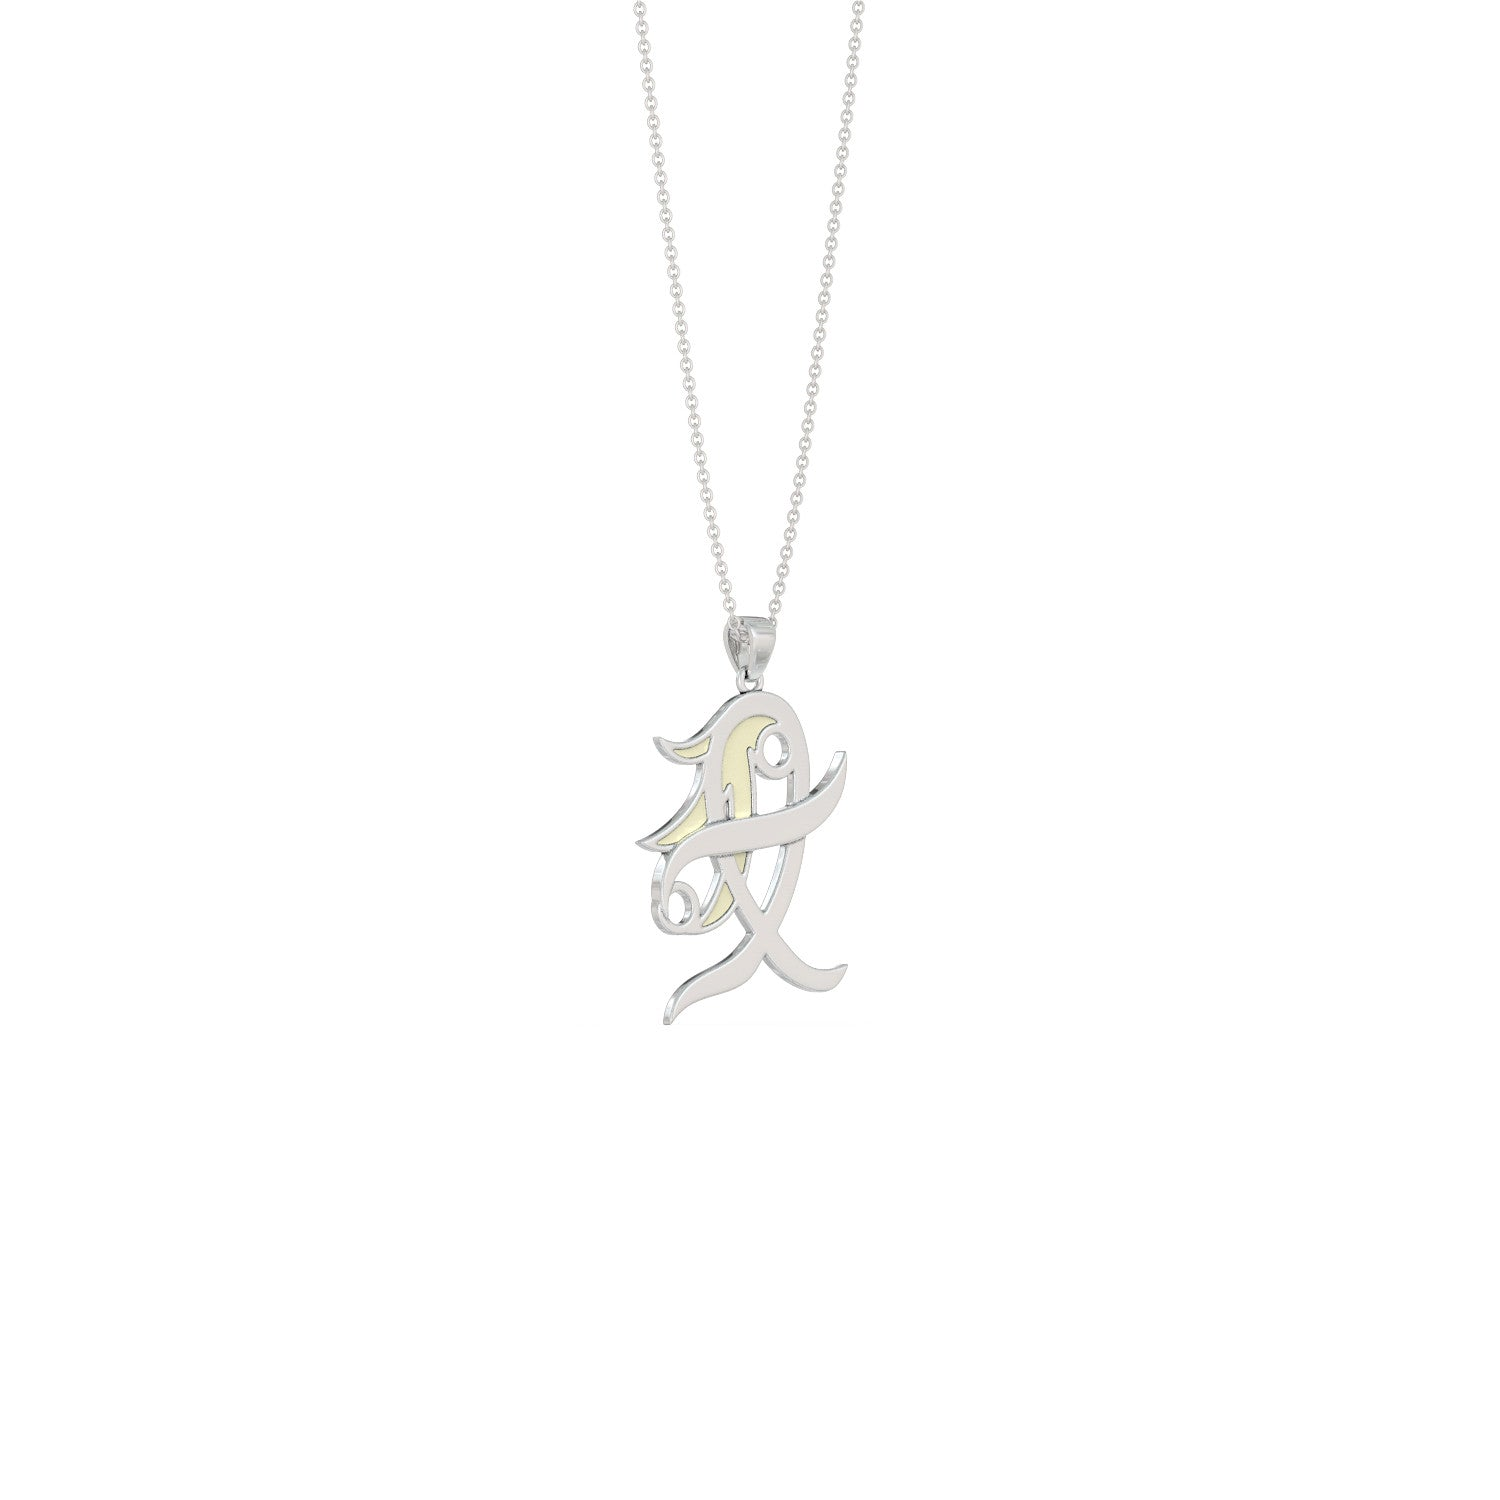 luna constellation love necklace by virgo collections